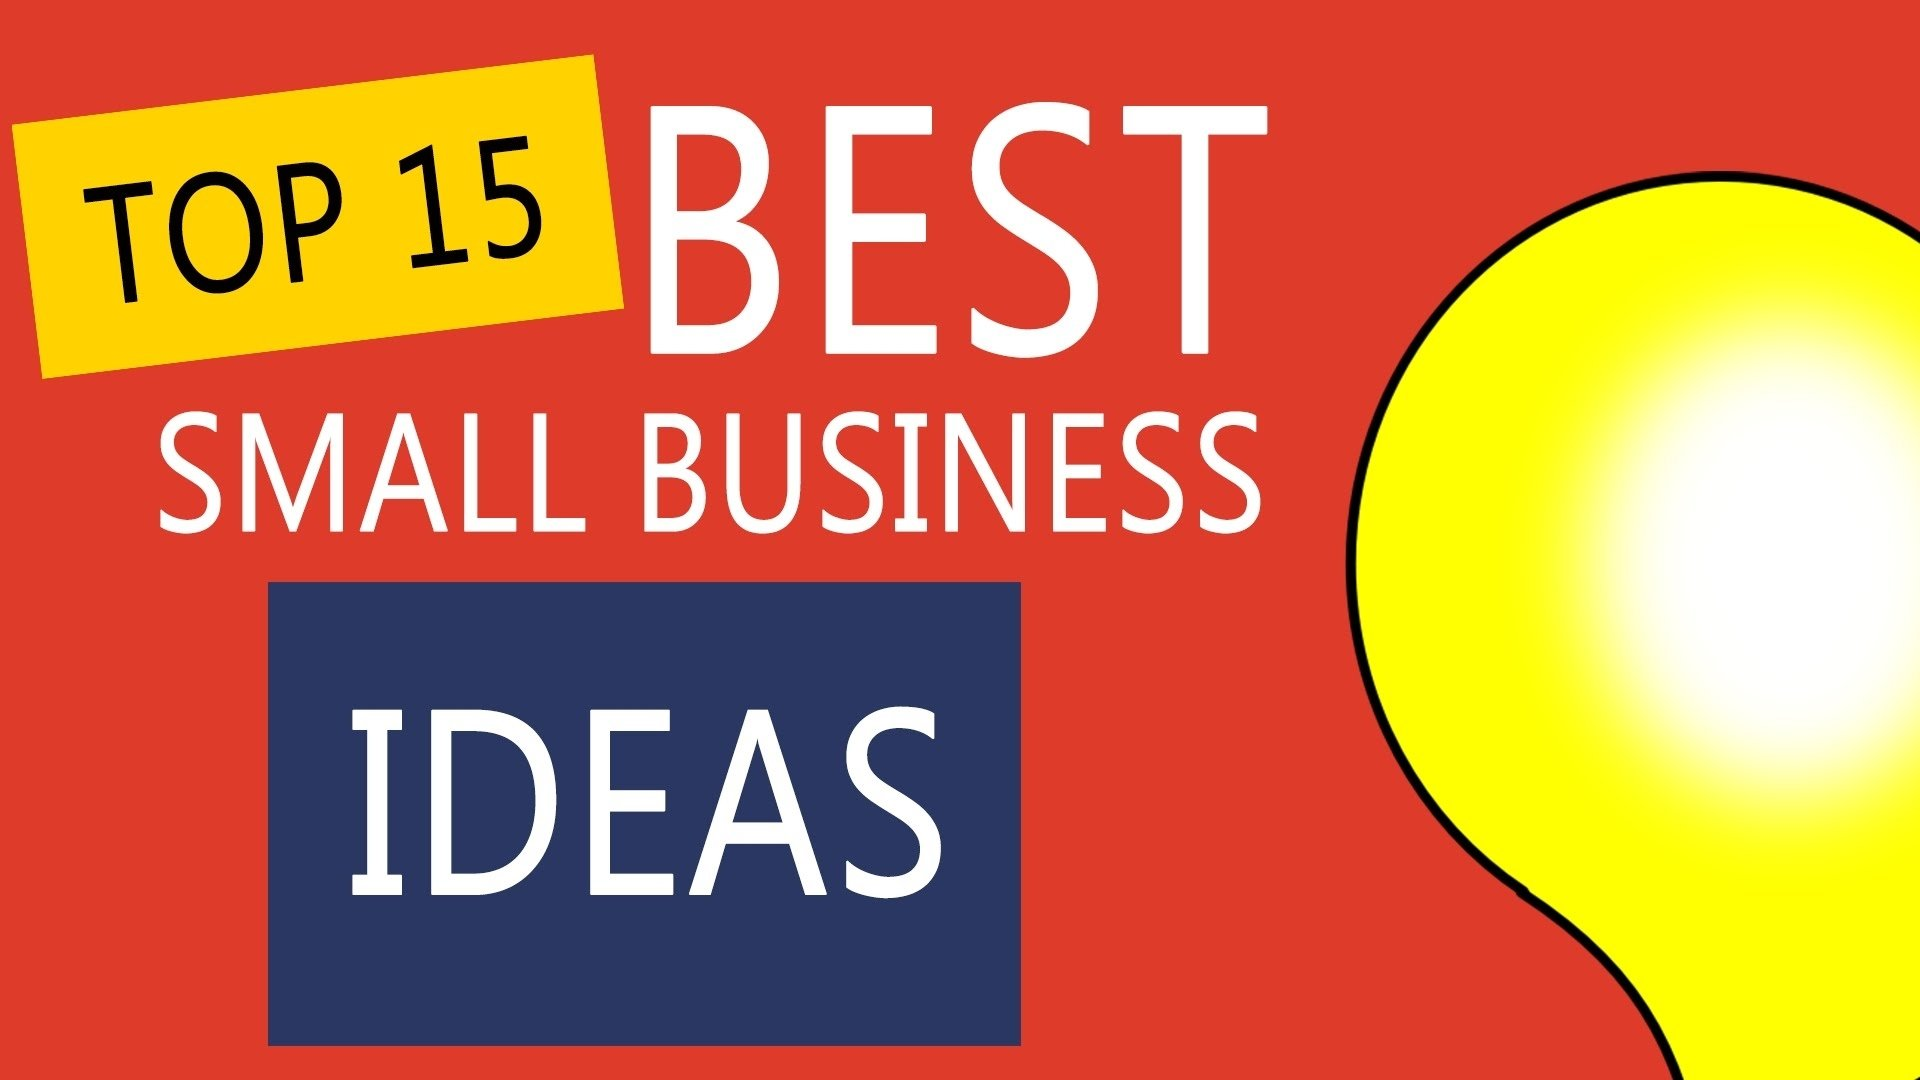 10 Pretty Business Ideas For Teenage Entrepreneurs top 15 best small business ideas to start your own business youtube 6